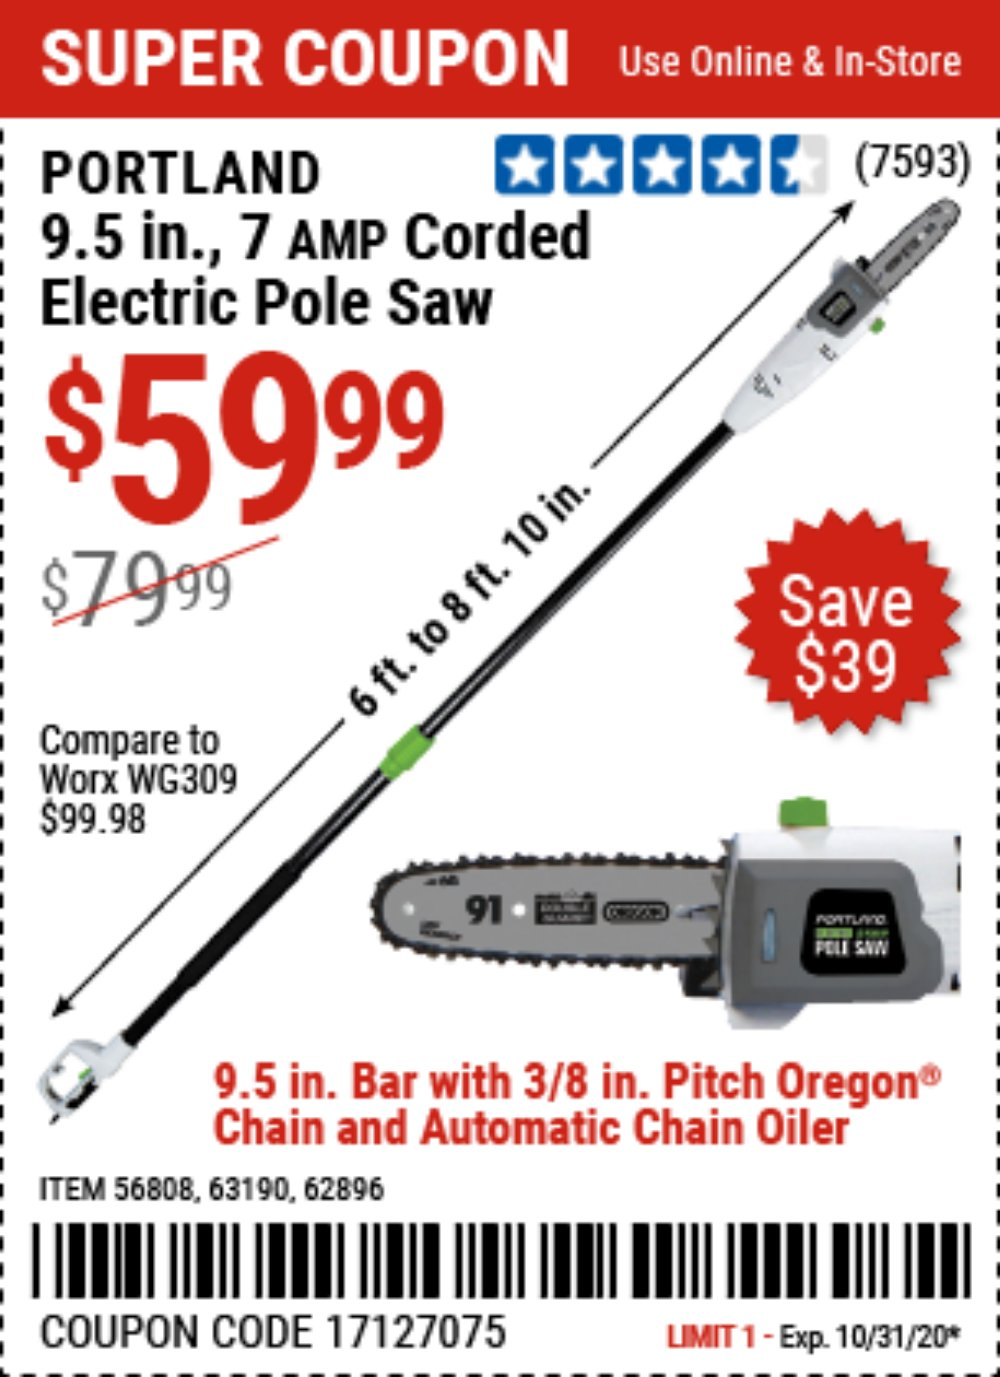 Harbor Freight Coupon, HF Coupons - 7 Amp 1.5 Hp Electric Pole Saw